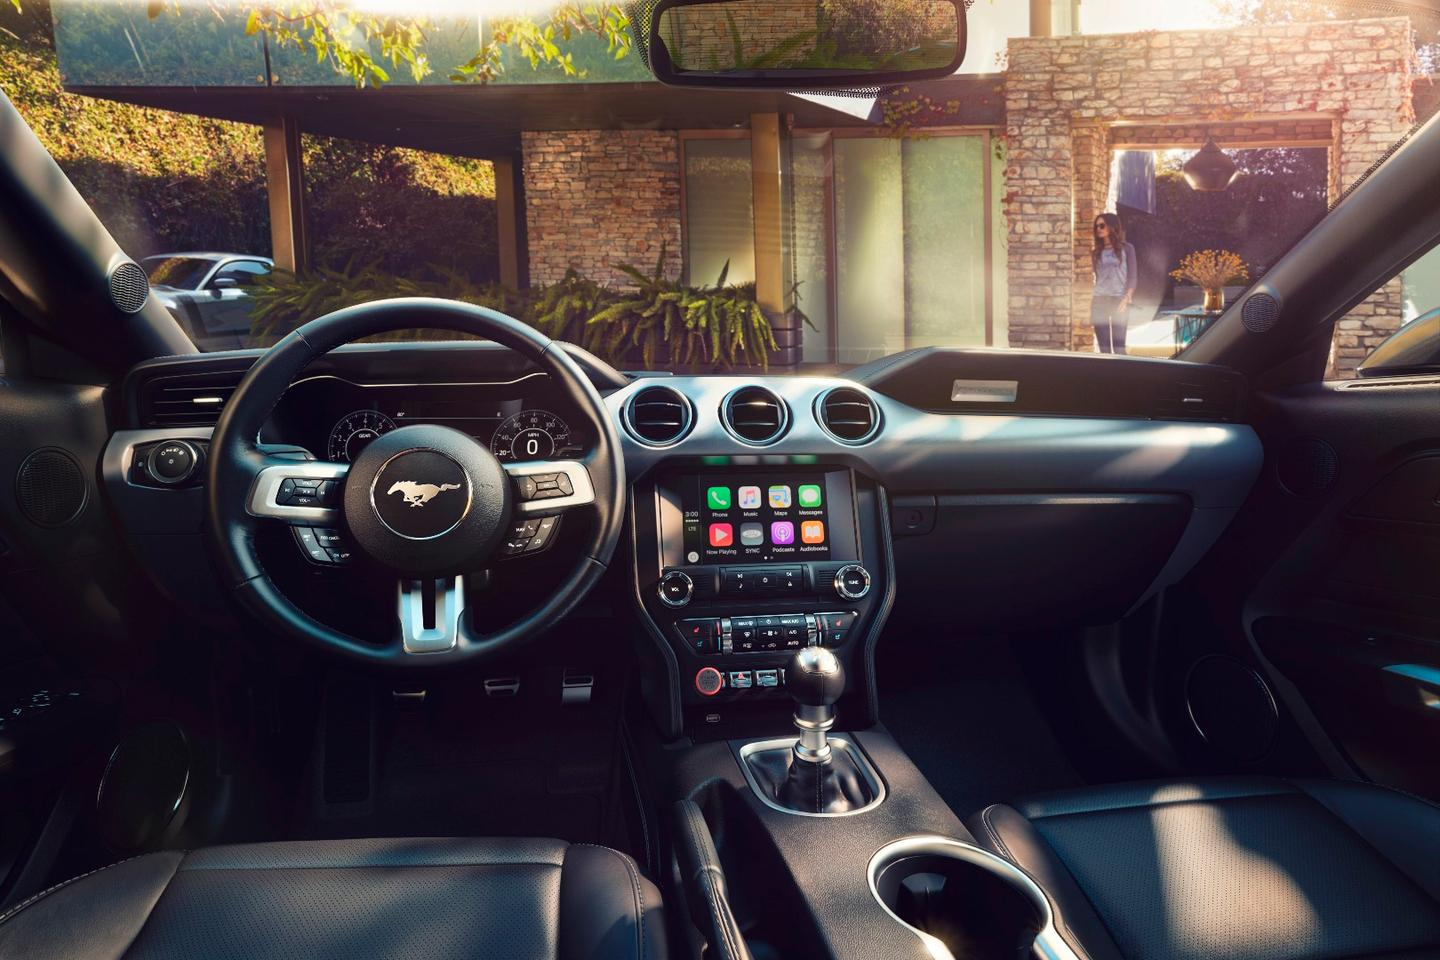 Inside, the Mustang has some styling changes focused mainly on materials choices and comfort options